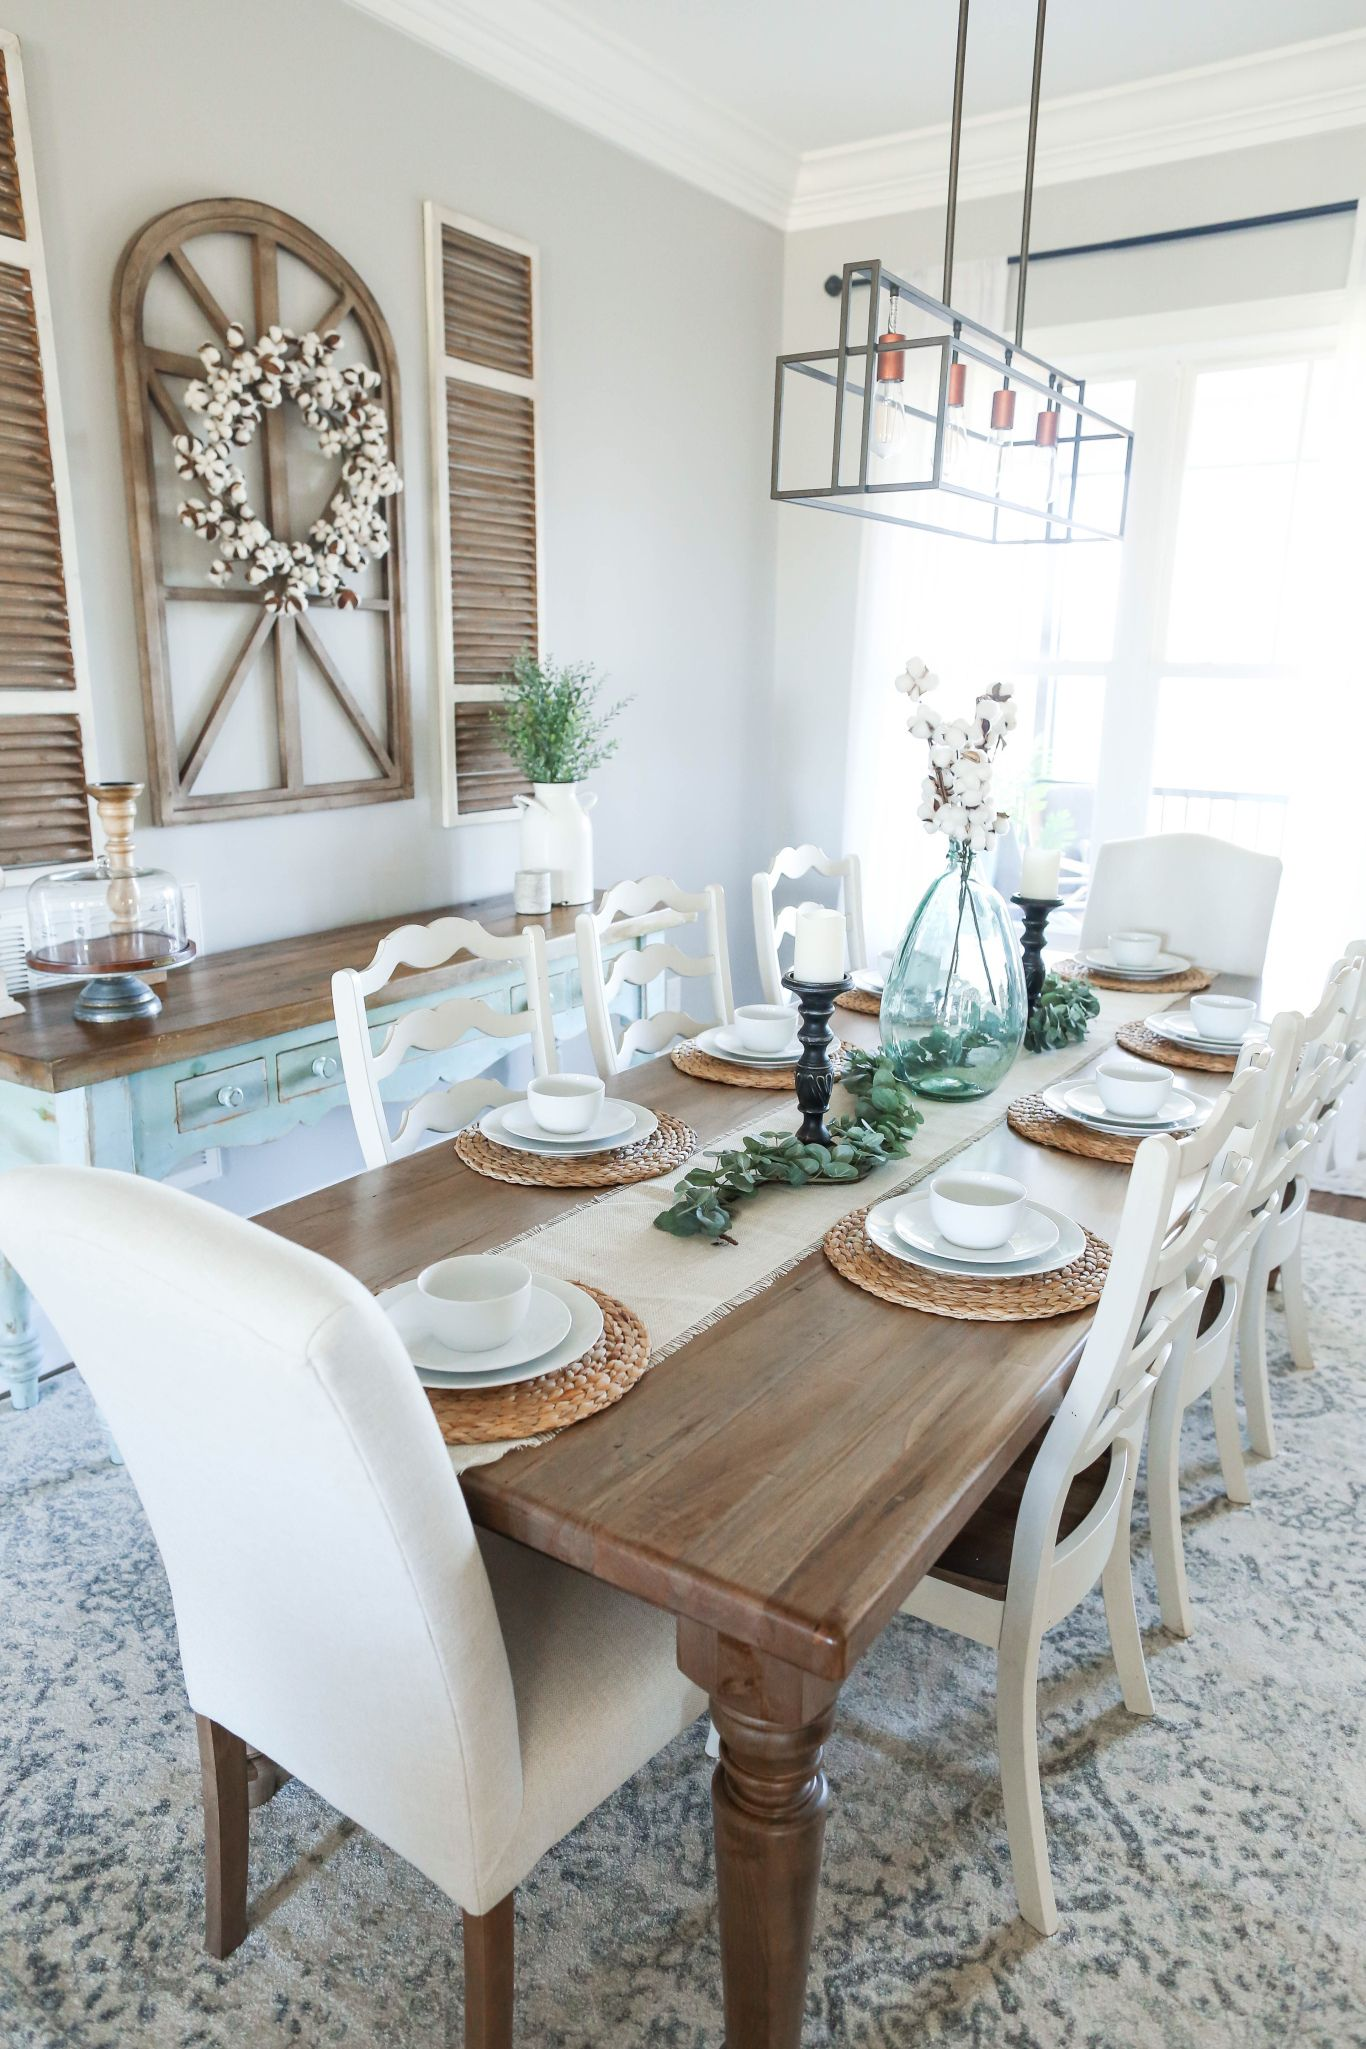 Farmhouse Spring Ii In 2020 Farmhouse Dining Room Table Farmhouse Dining Room Dining Room Remodel